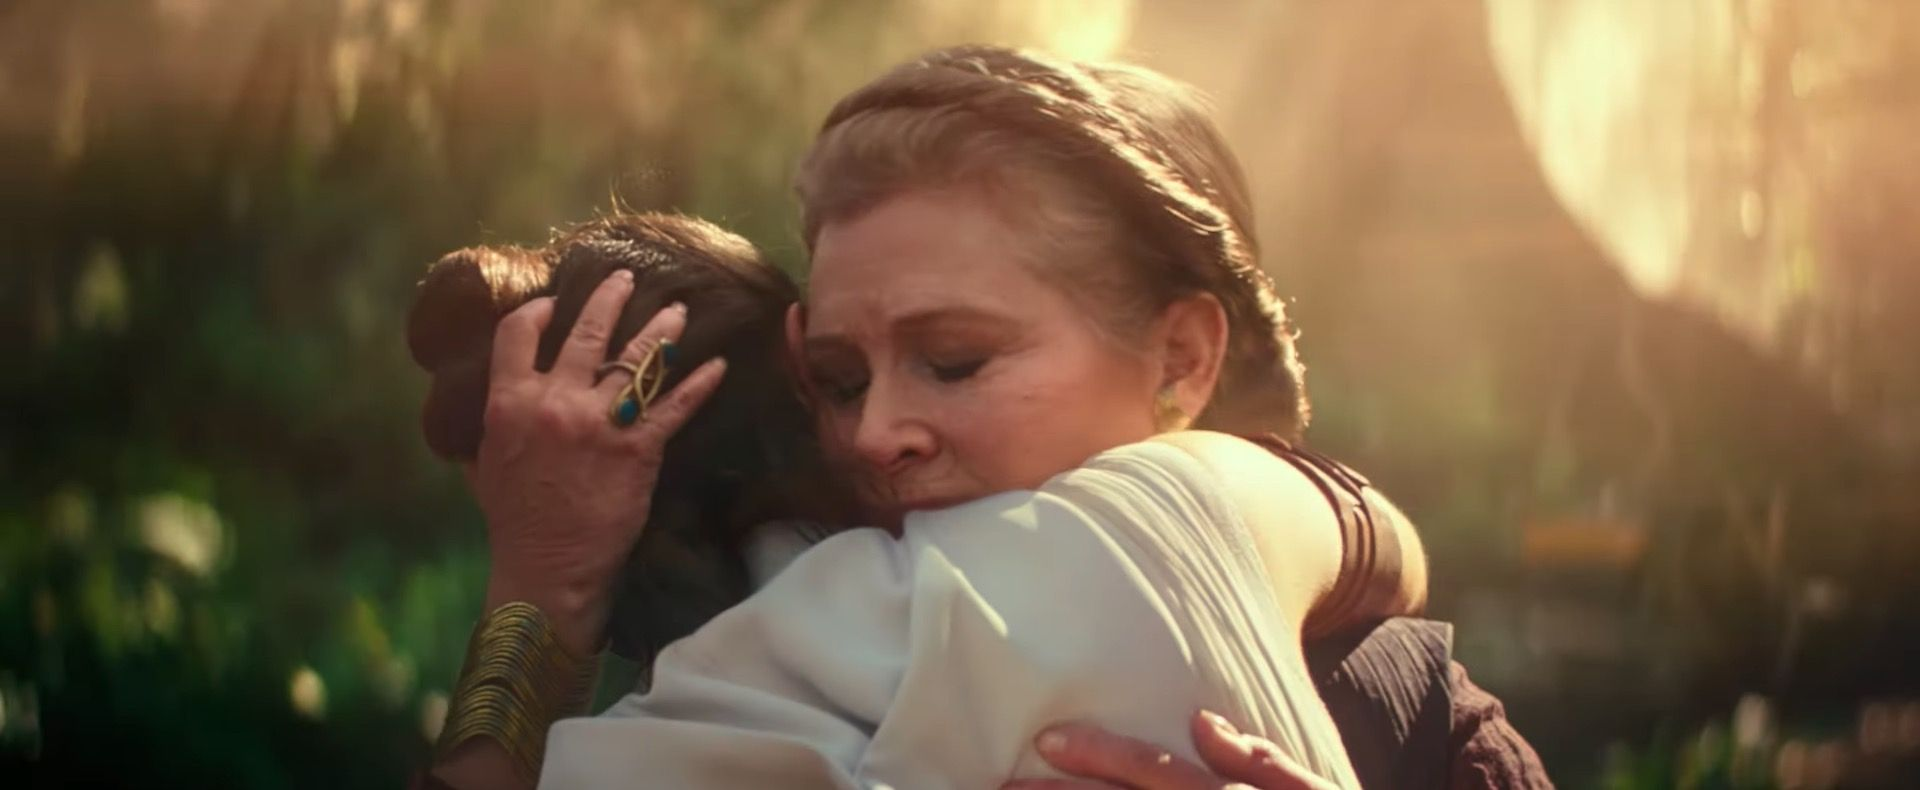 """Star Wars' Daisy Ridley admits it was """"really difficult"""" shooting Leia scenes in The Rise of Skywalker"""